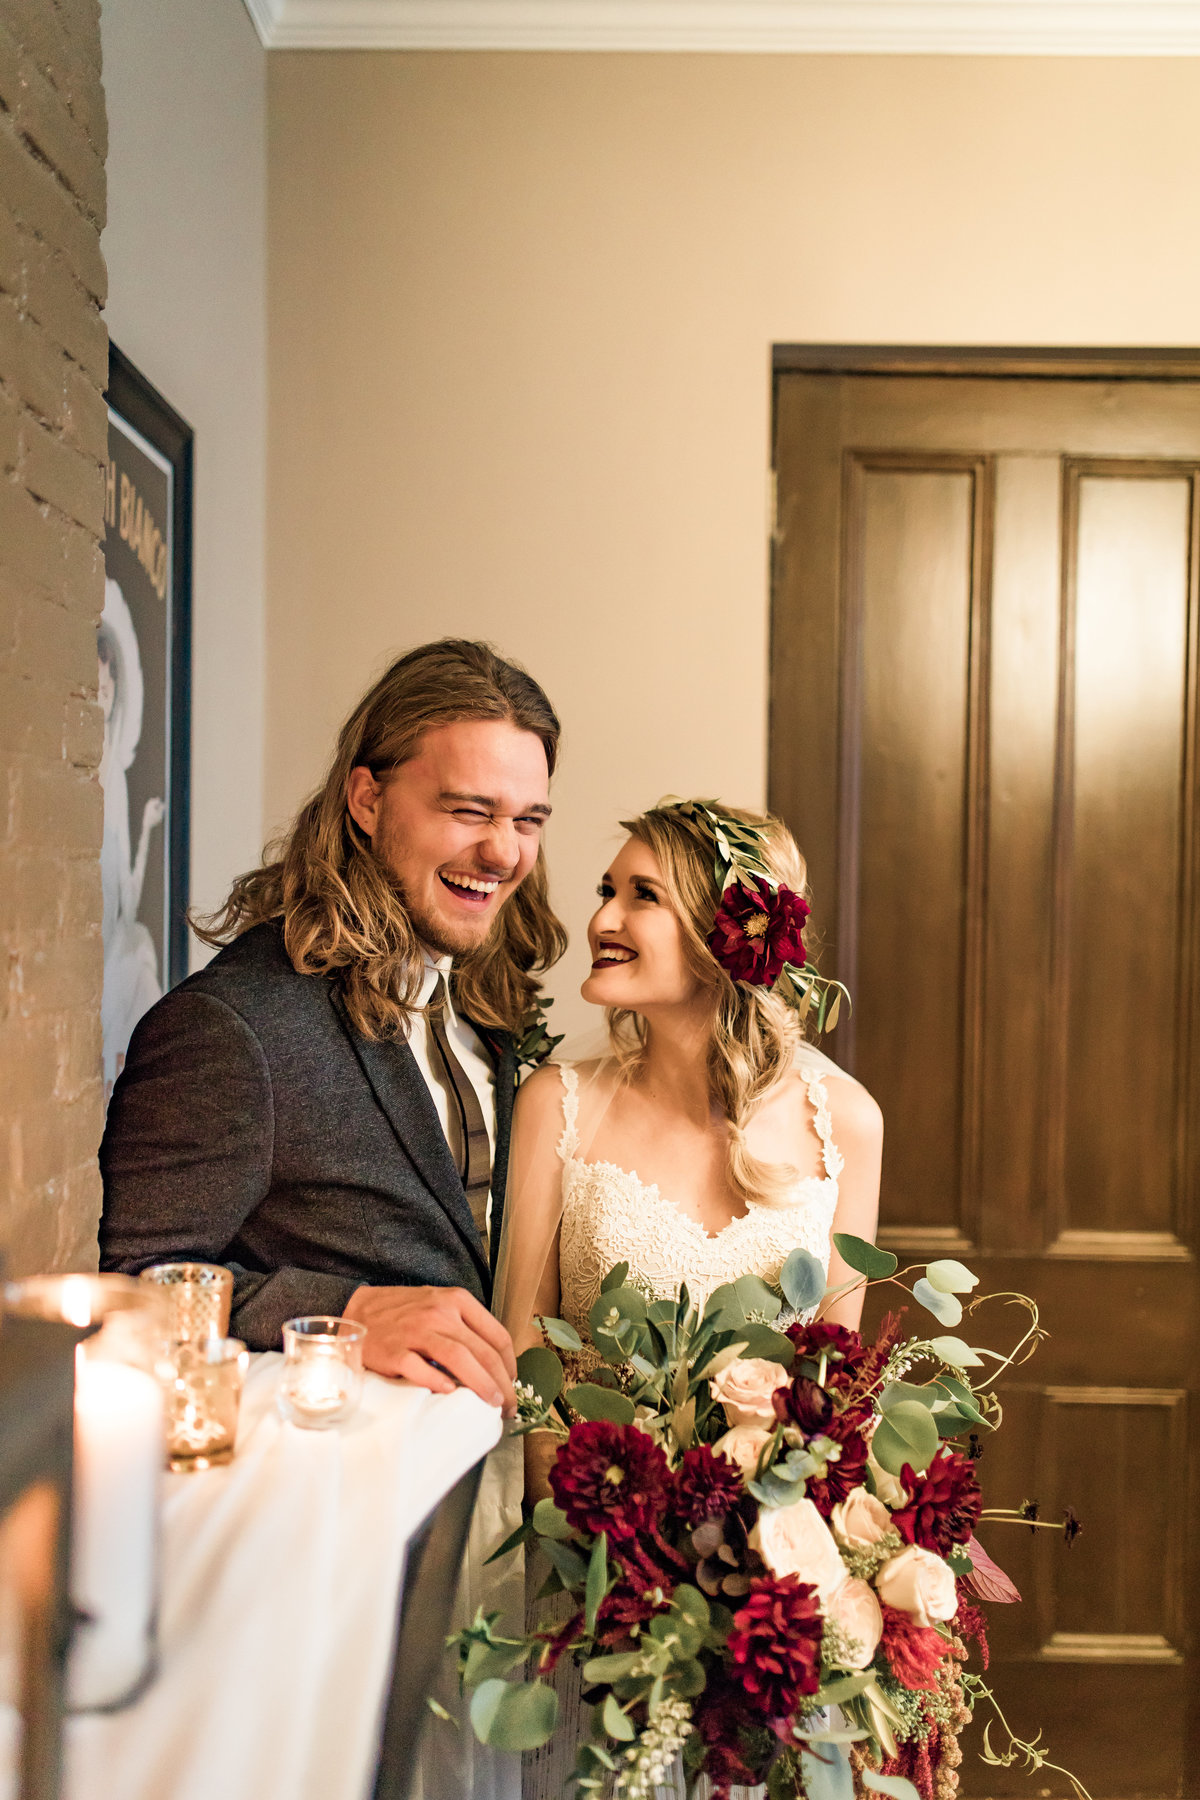 Fall Boho-Inspired Styled Shoot Lafayette Square Historic District  St. Louis, Missouri  Allison Slater Photography  Wedding Photographer213